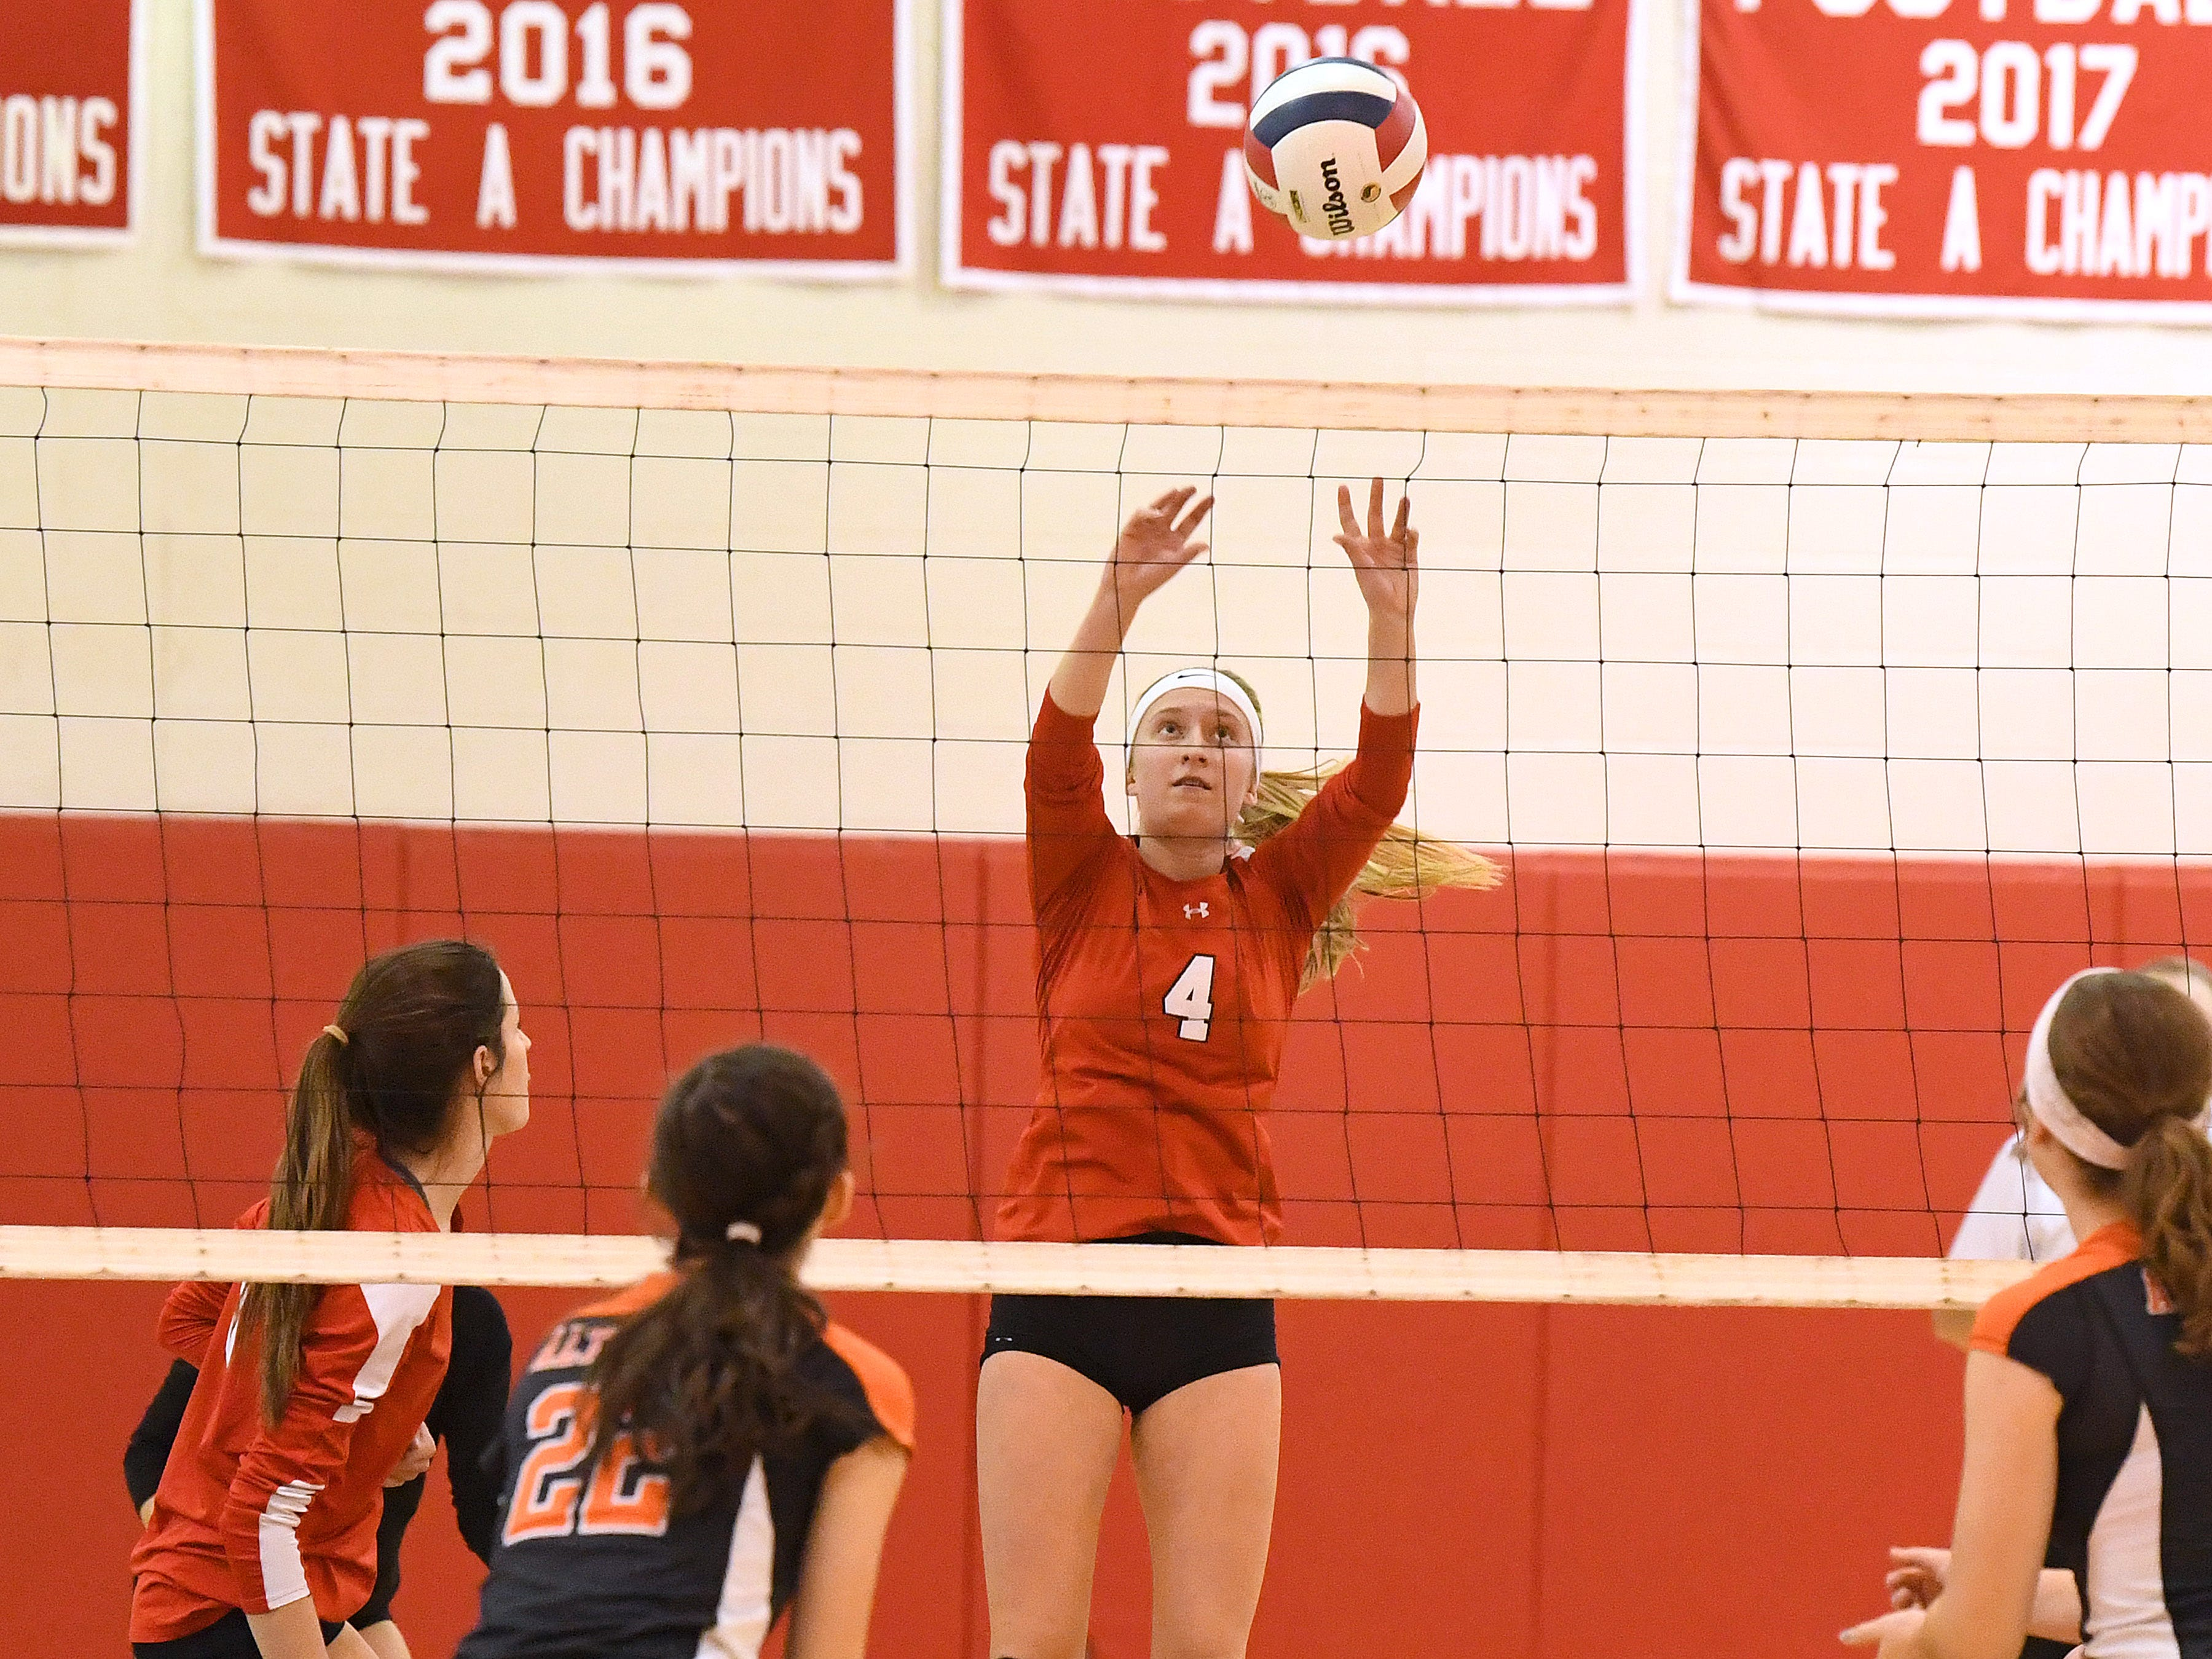 Riverheads' Emma Tomlinson sends the ball back across the net during the Region 1B volleyball championship played in Greenville on Wednesday, Nov. 7, 2018.